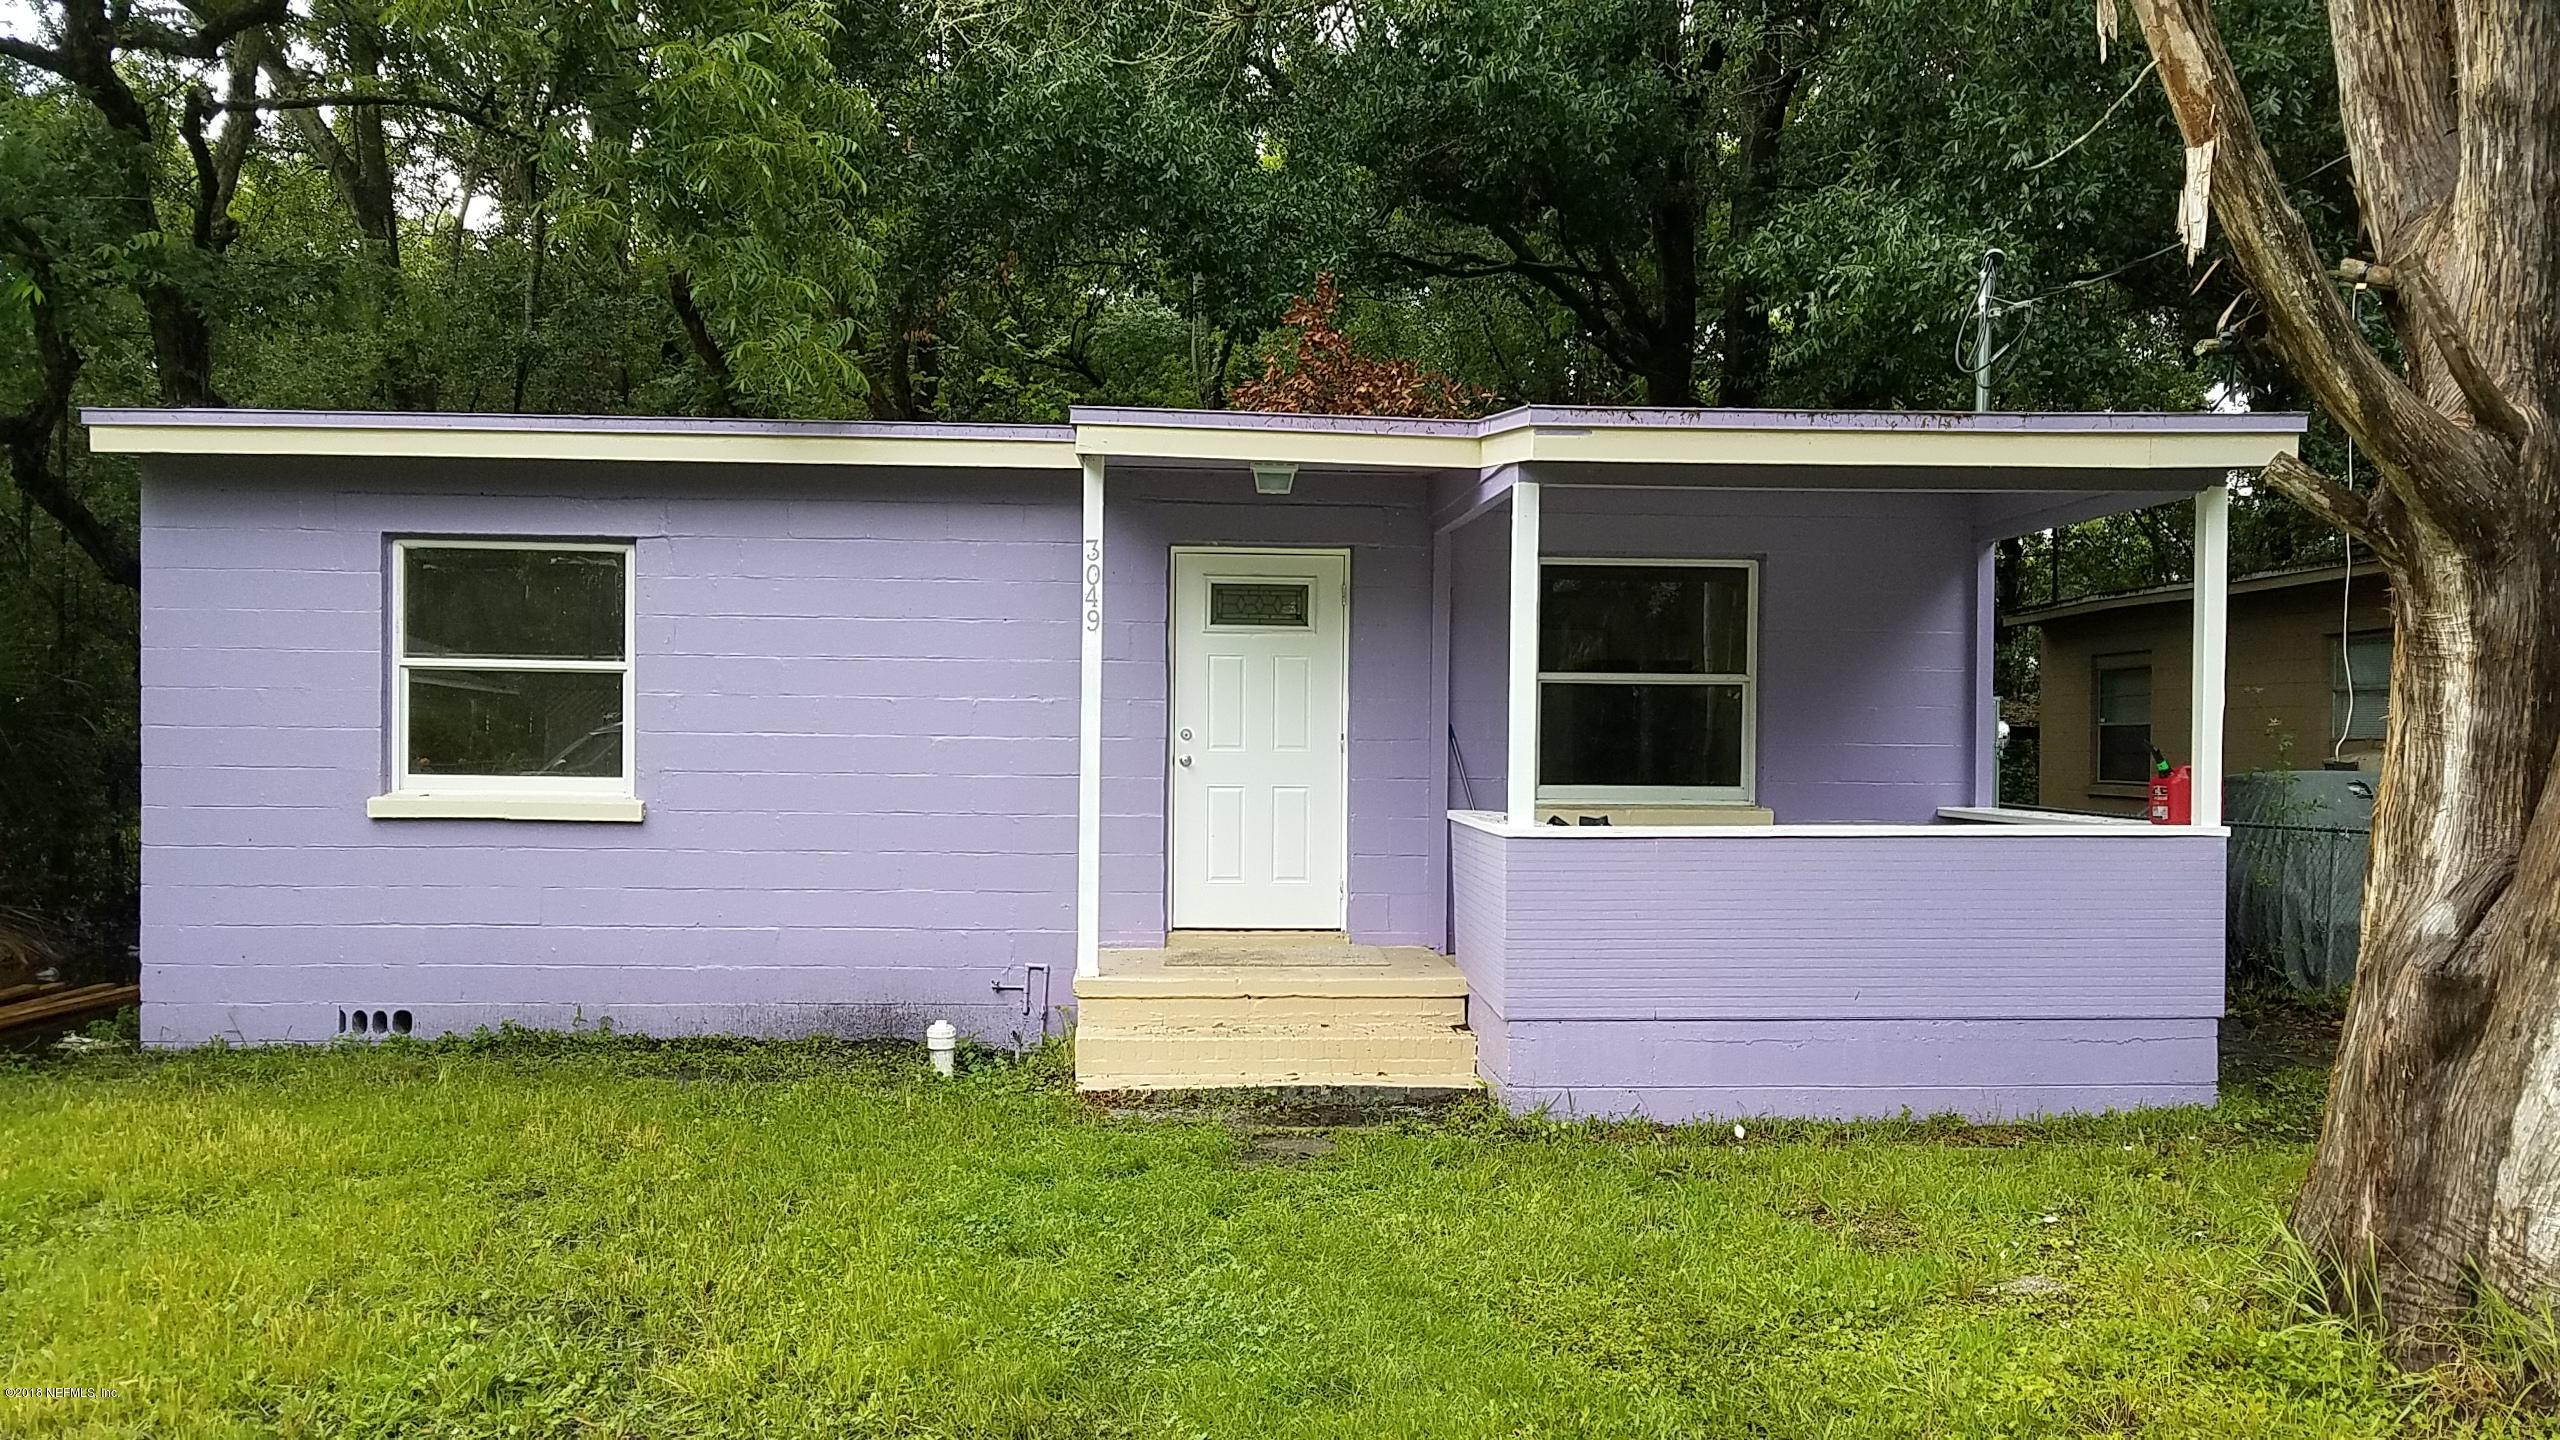 3049 DIGNAN, JACKSONVILLE, FLORIDA 32254, 2 Bedrooms Bedrooms, ,1 BathroomBathrooms,Single family,For sale,DIGNAN,944668